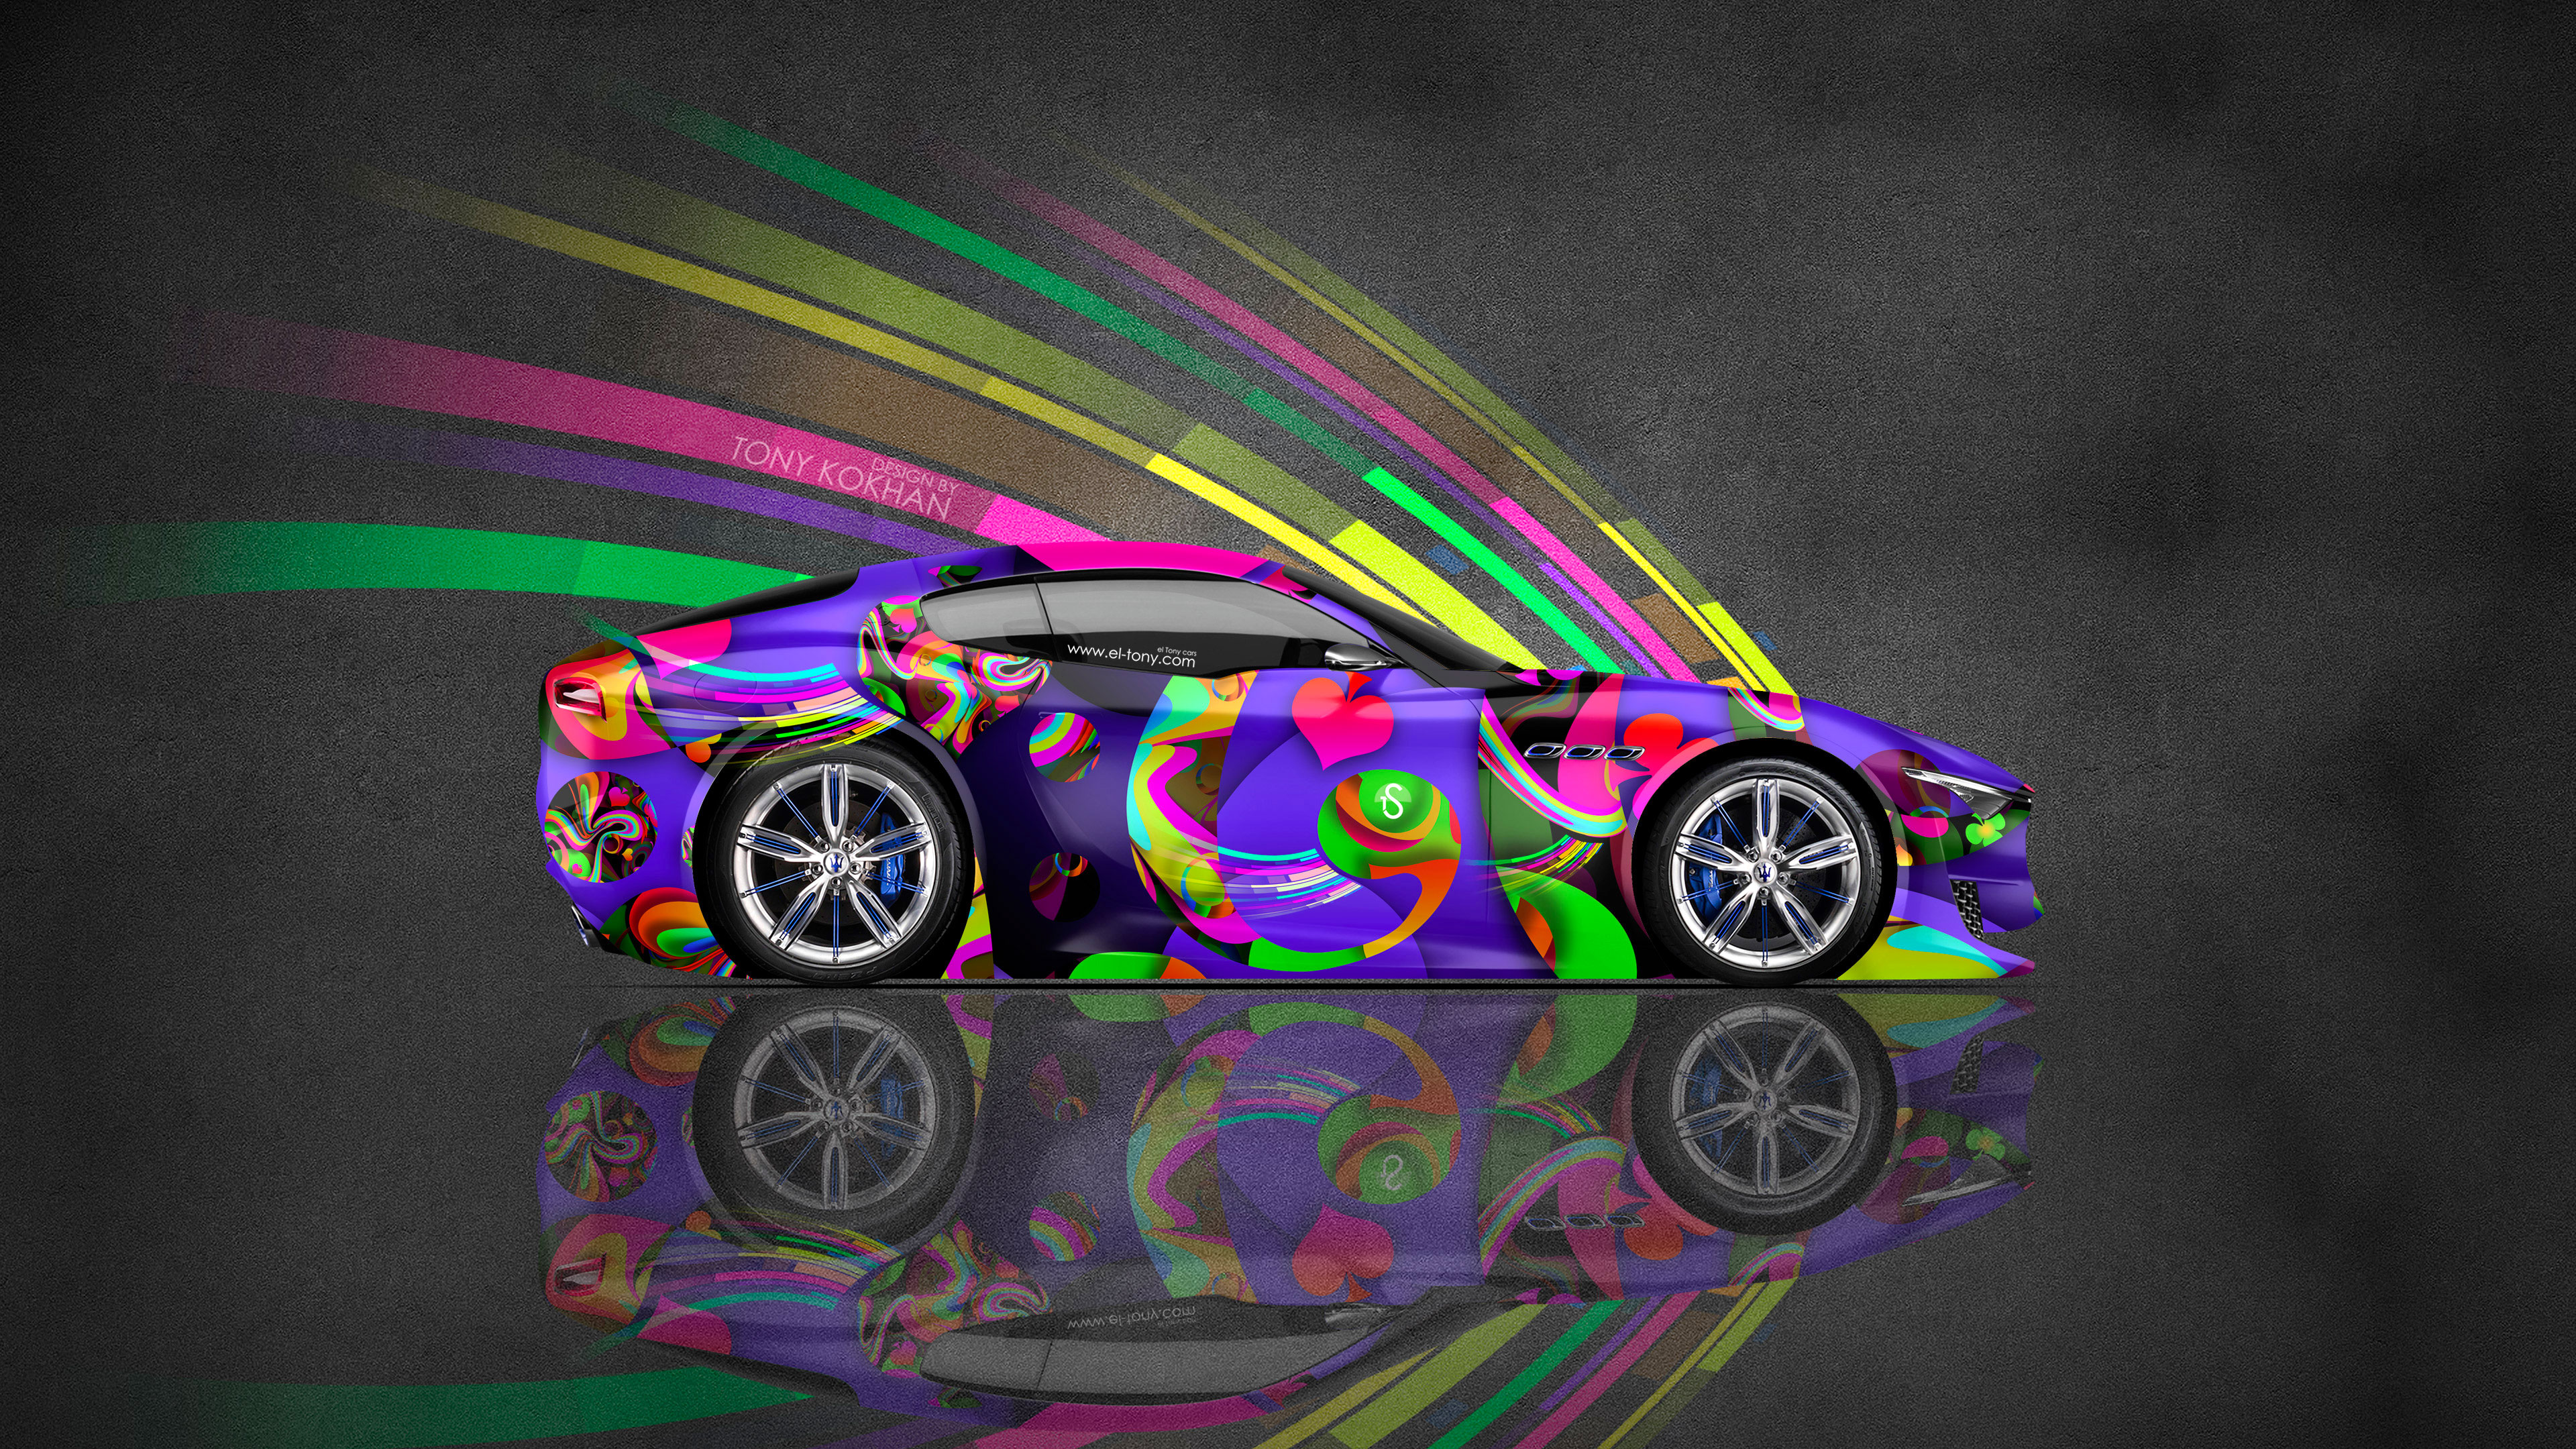 Maserati-Alfieri-Side-Super-Abstract-Aerography-Car-2015-Multicolors-4K-Wallpapers-design-by-Tony-Kokhan-www.el-tony.com-image